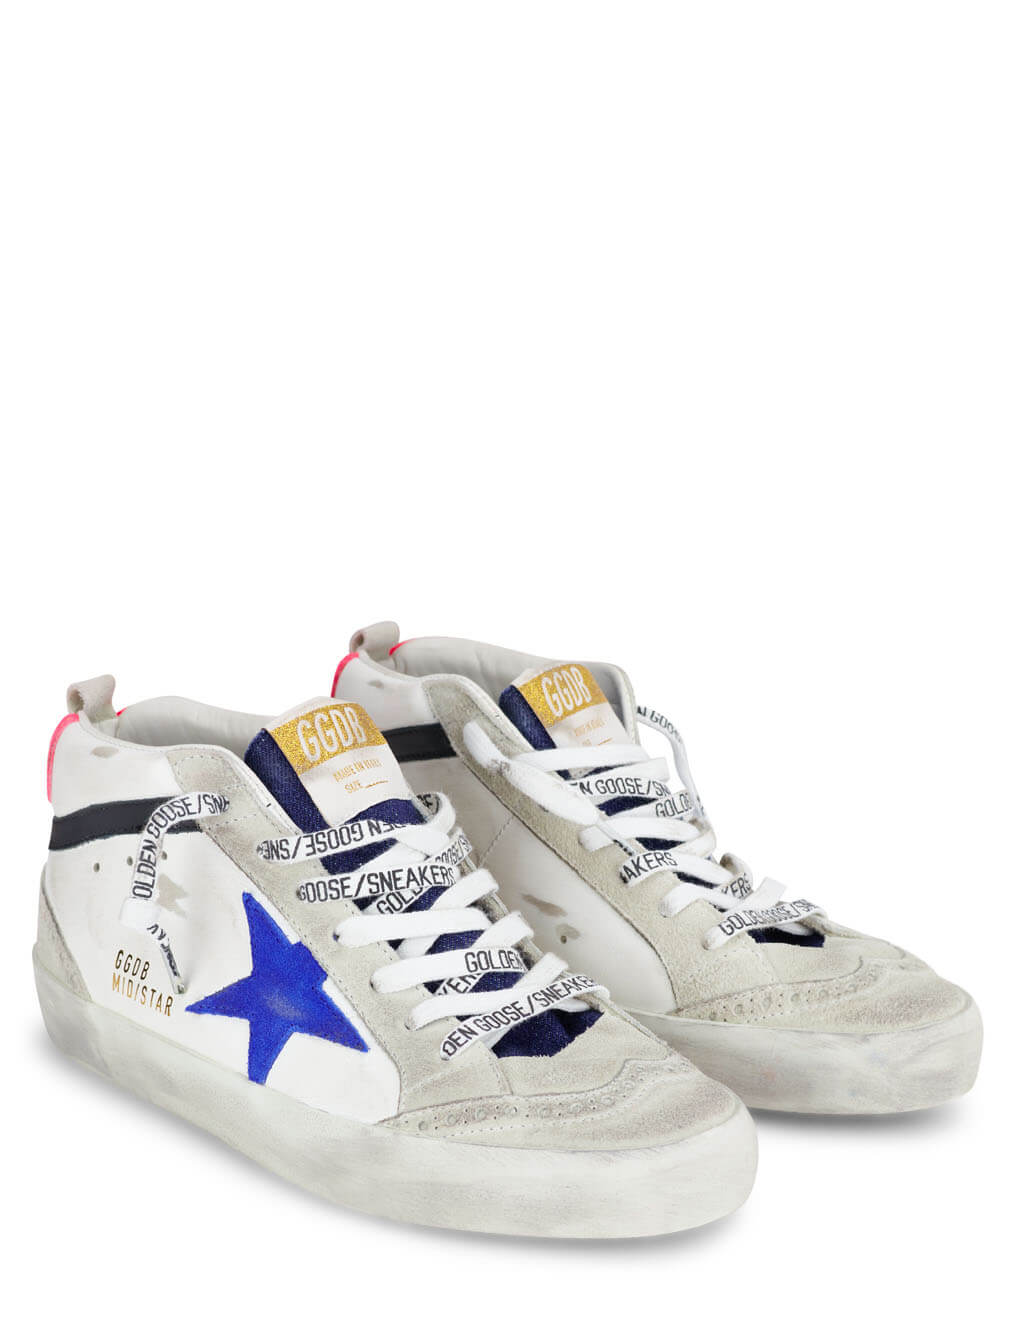 Women's Golden Goose Mid Star Sneakers in White/Blue/Fuchsia/Black - GWF00122.F000263.80269